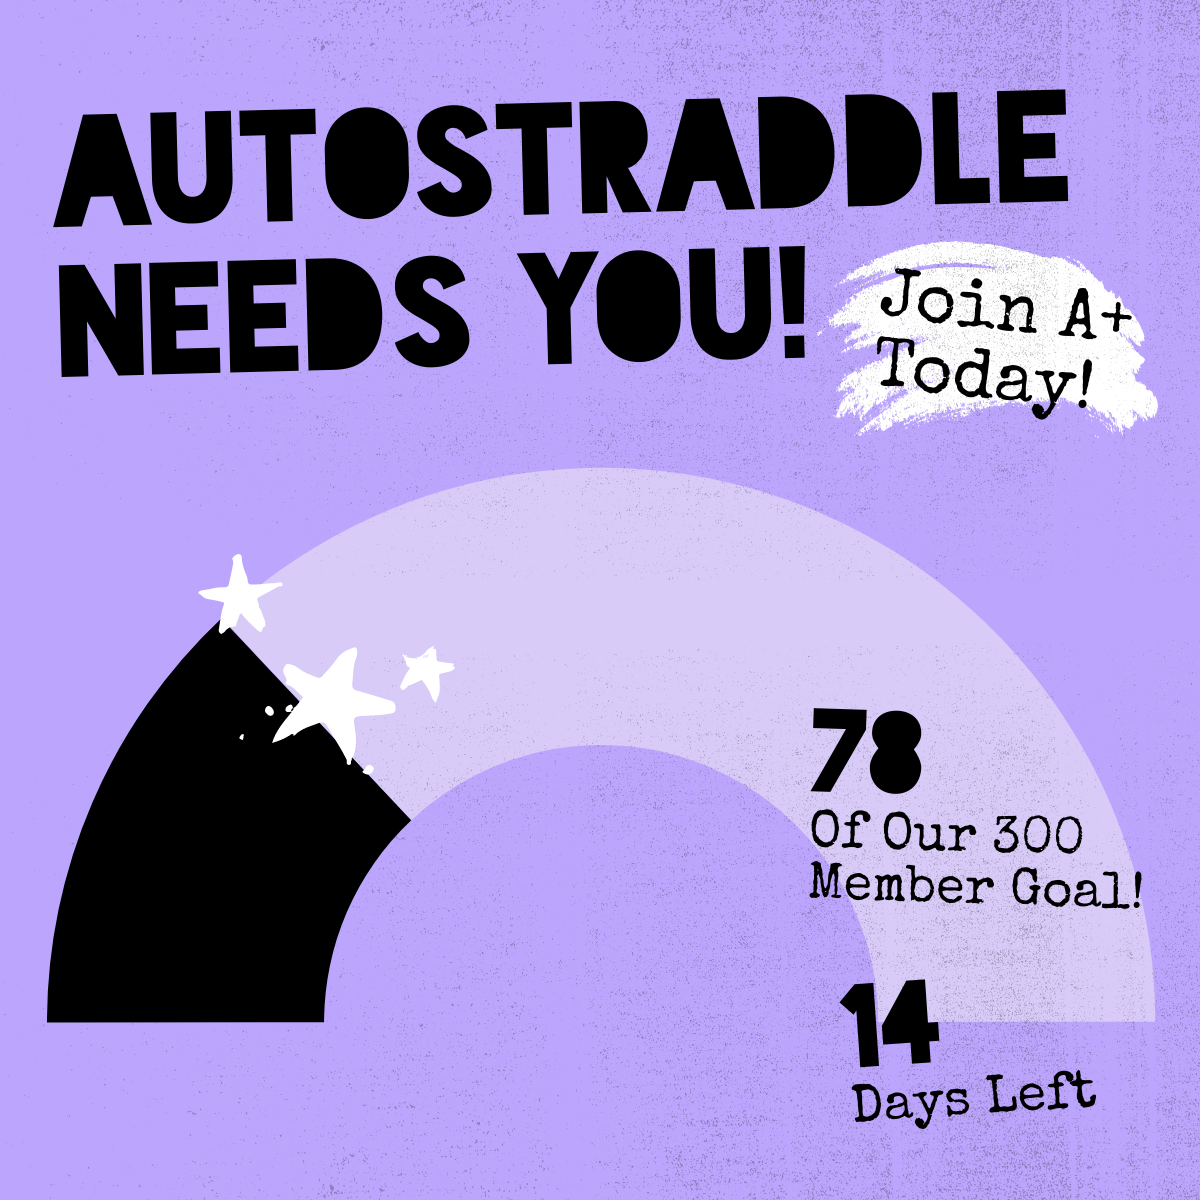 Autostraddle Needs You! Join A+ Today! 78 of our 300 Member Goal! 14 Days Left></a></p> </div> </aside><!-- Sidebar for All Vistors --> <aside id=